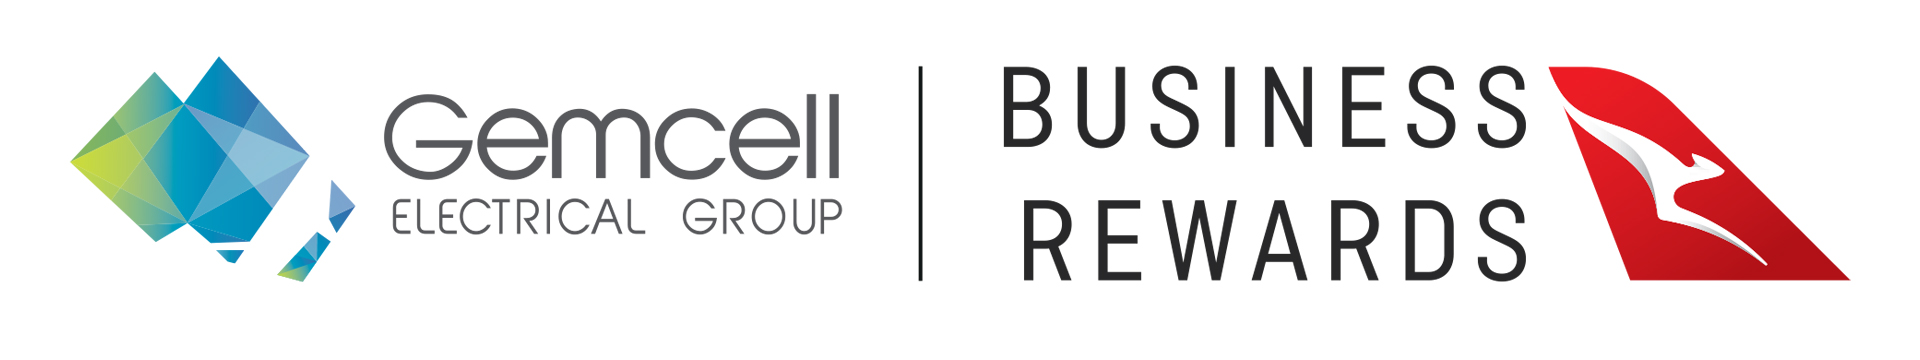 Gemcel Electrical Group | Business Rewards